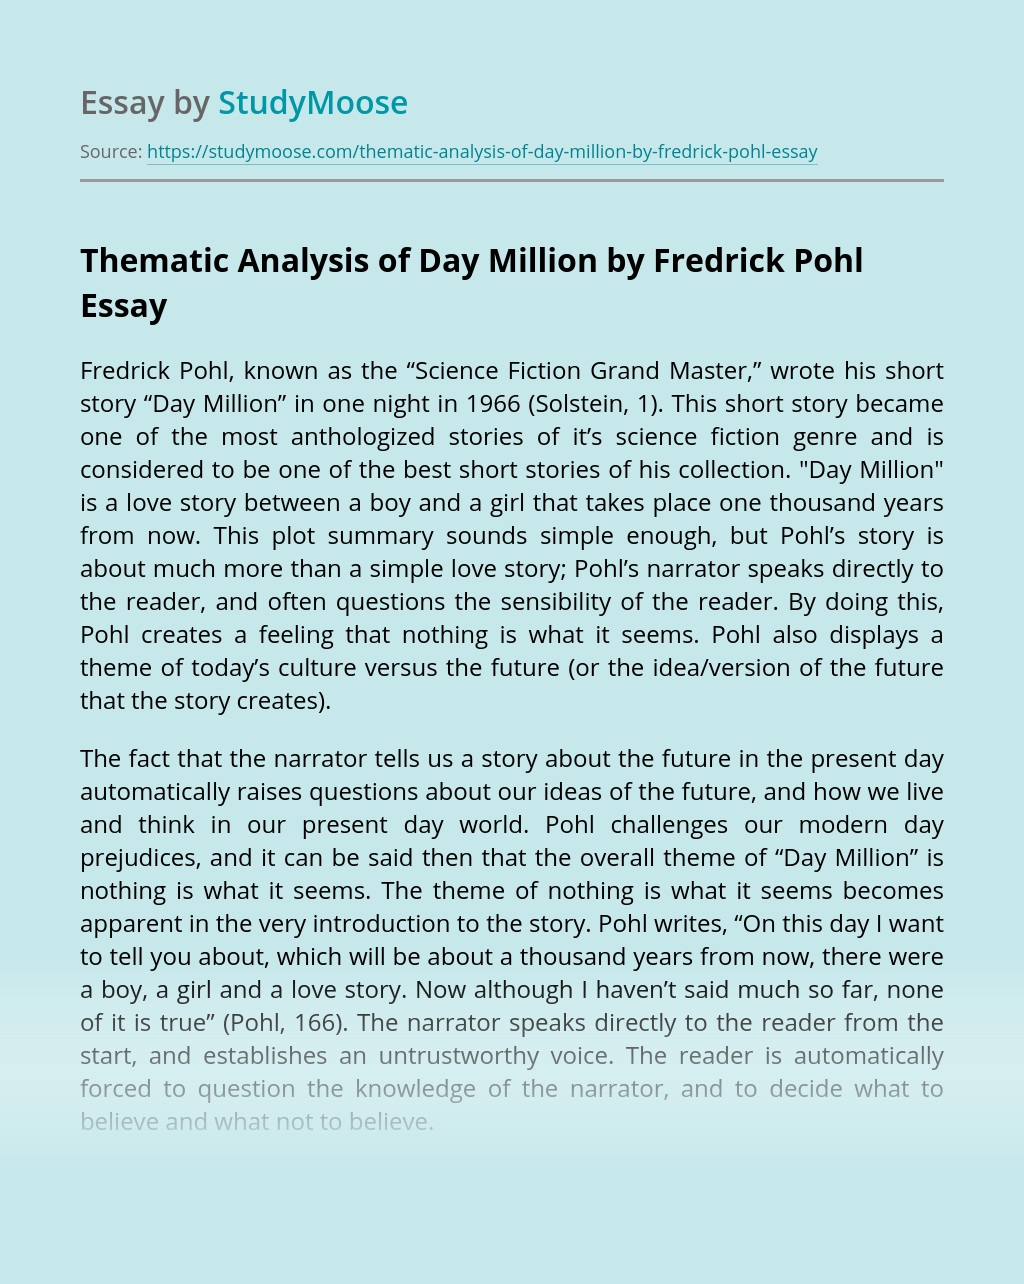 Thematic Analysis of Day Million by Fredrick Pohl